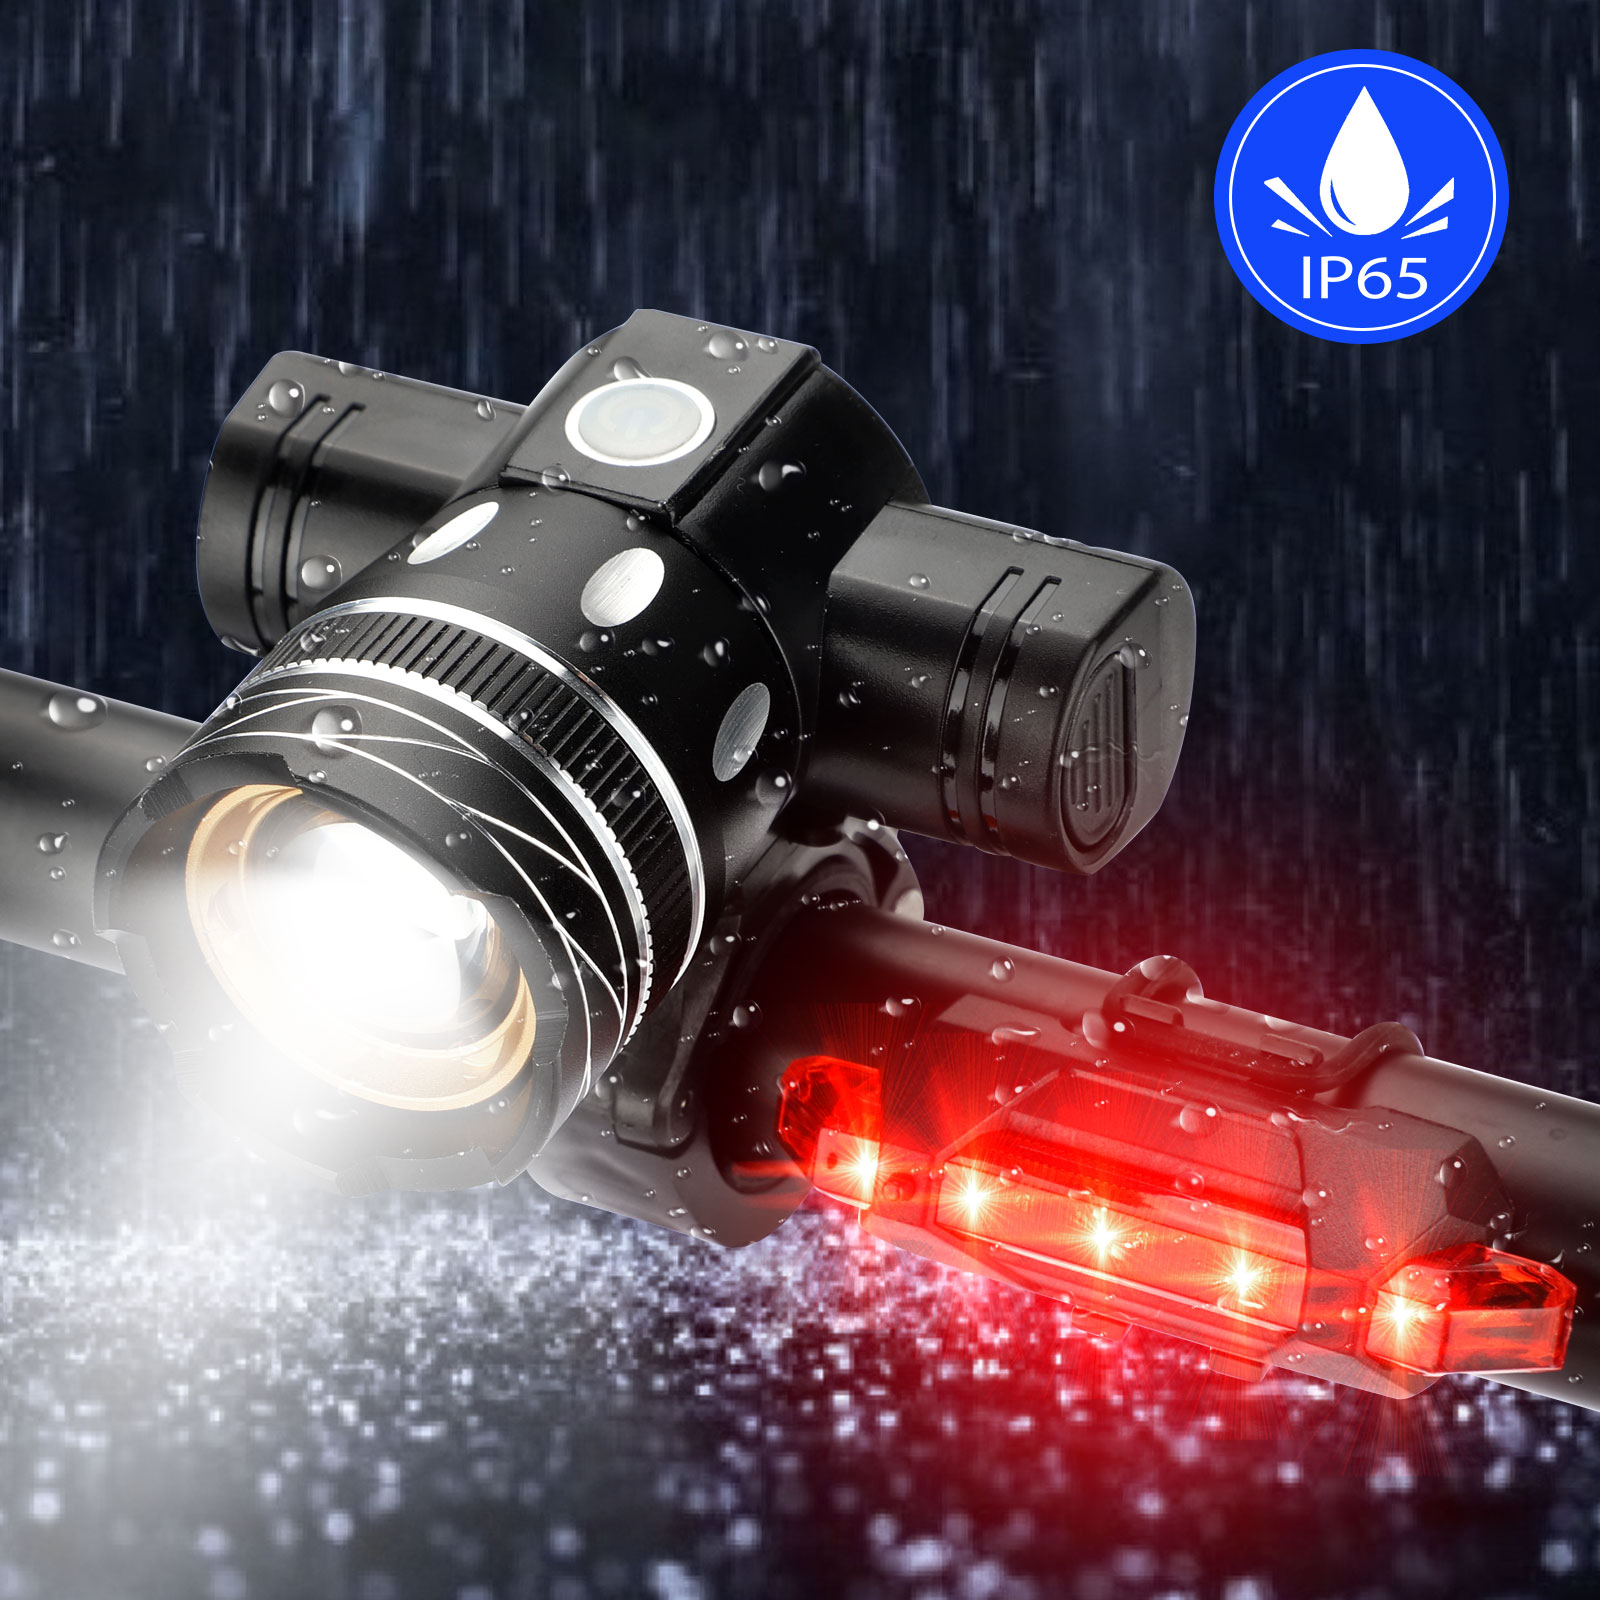 thumbnail 4 - IP65-Bike-Front-Rear-LED-Light-Set-USB-Rechargeable-Bicycle-Headlight-Taillight